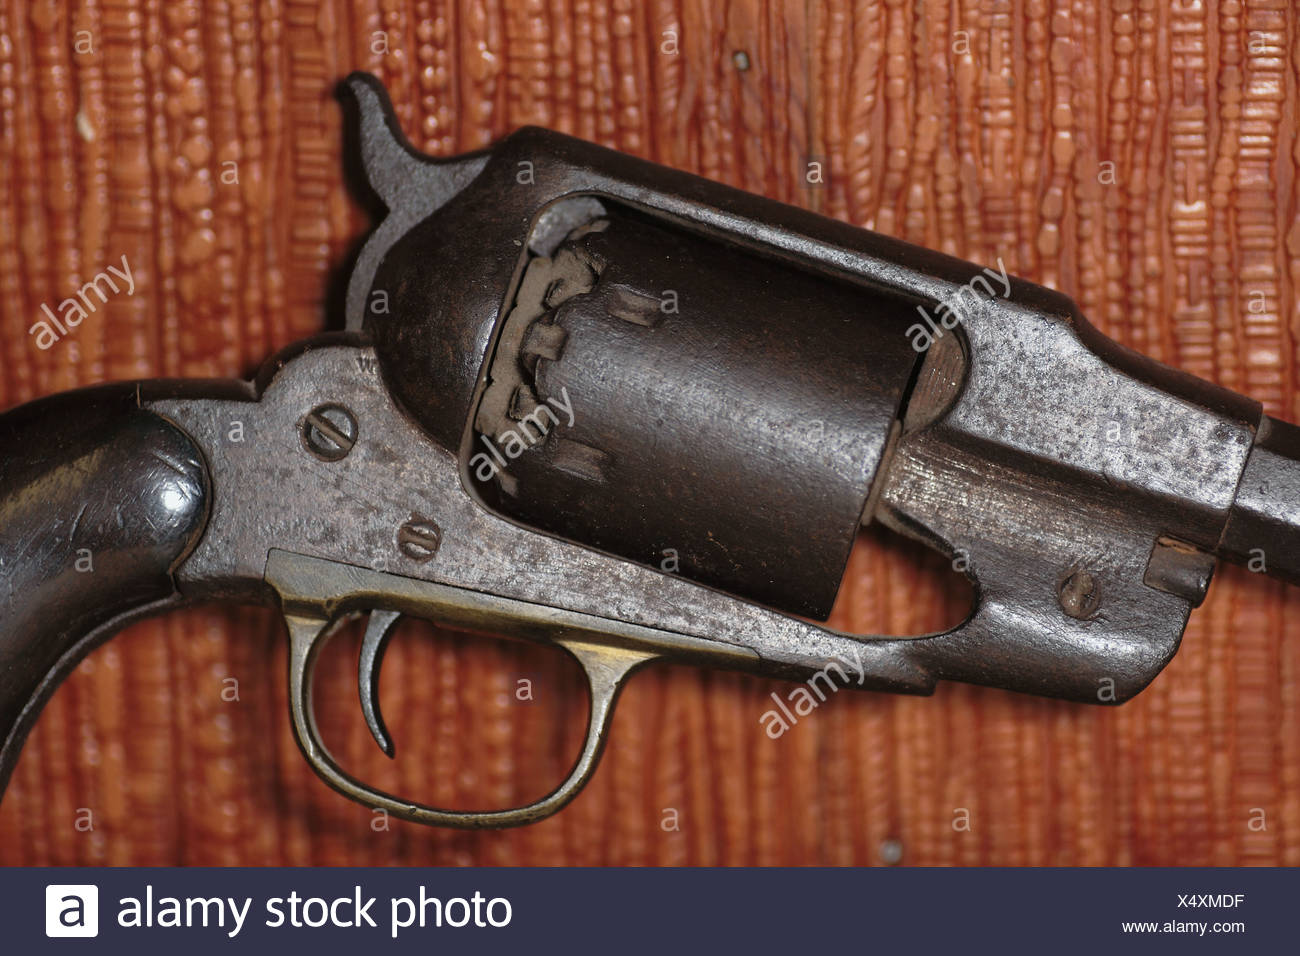 Old Colt cap and ball revolver pistol Stock Photo: 278411323 - Alamy